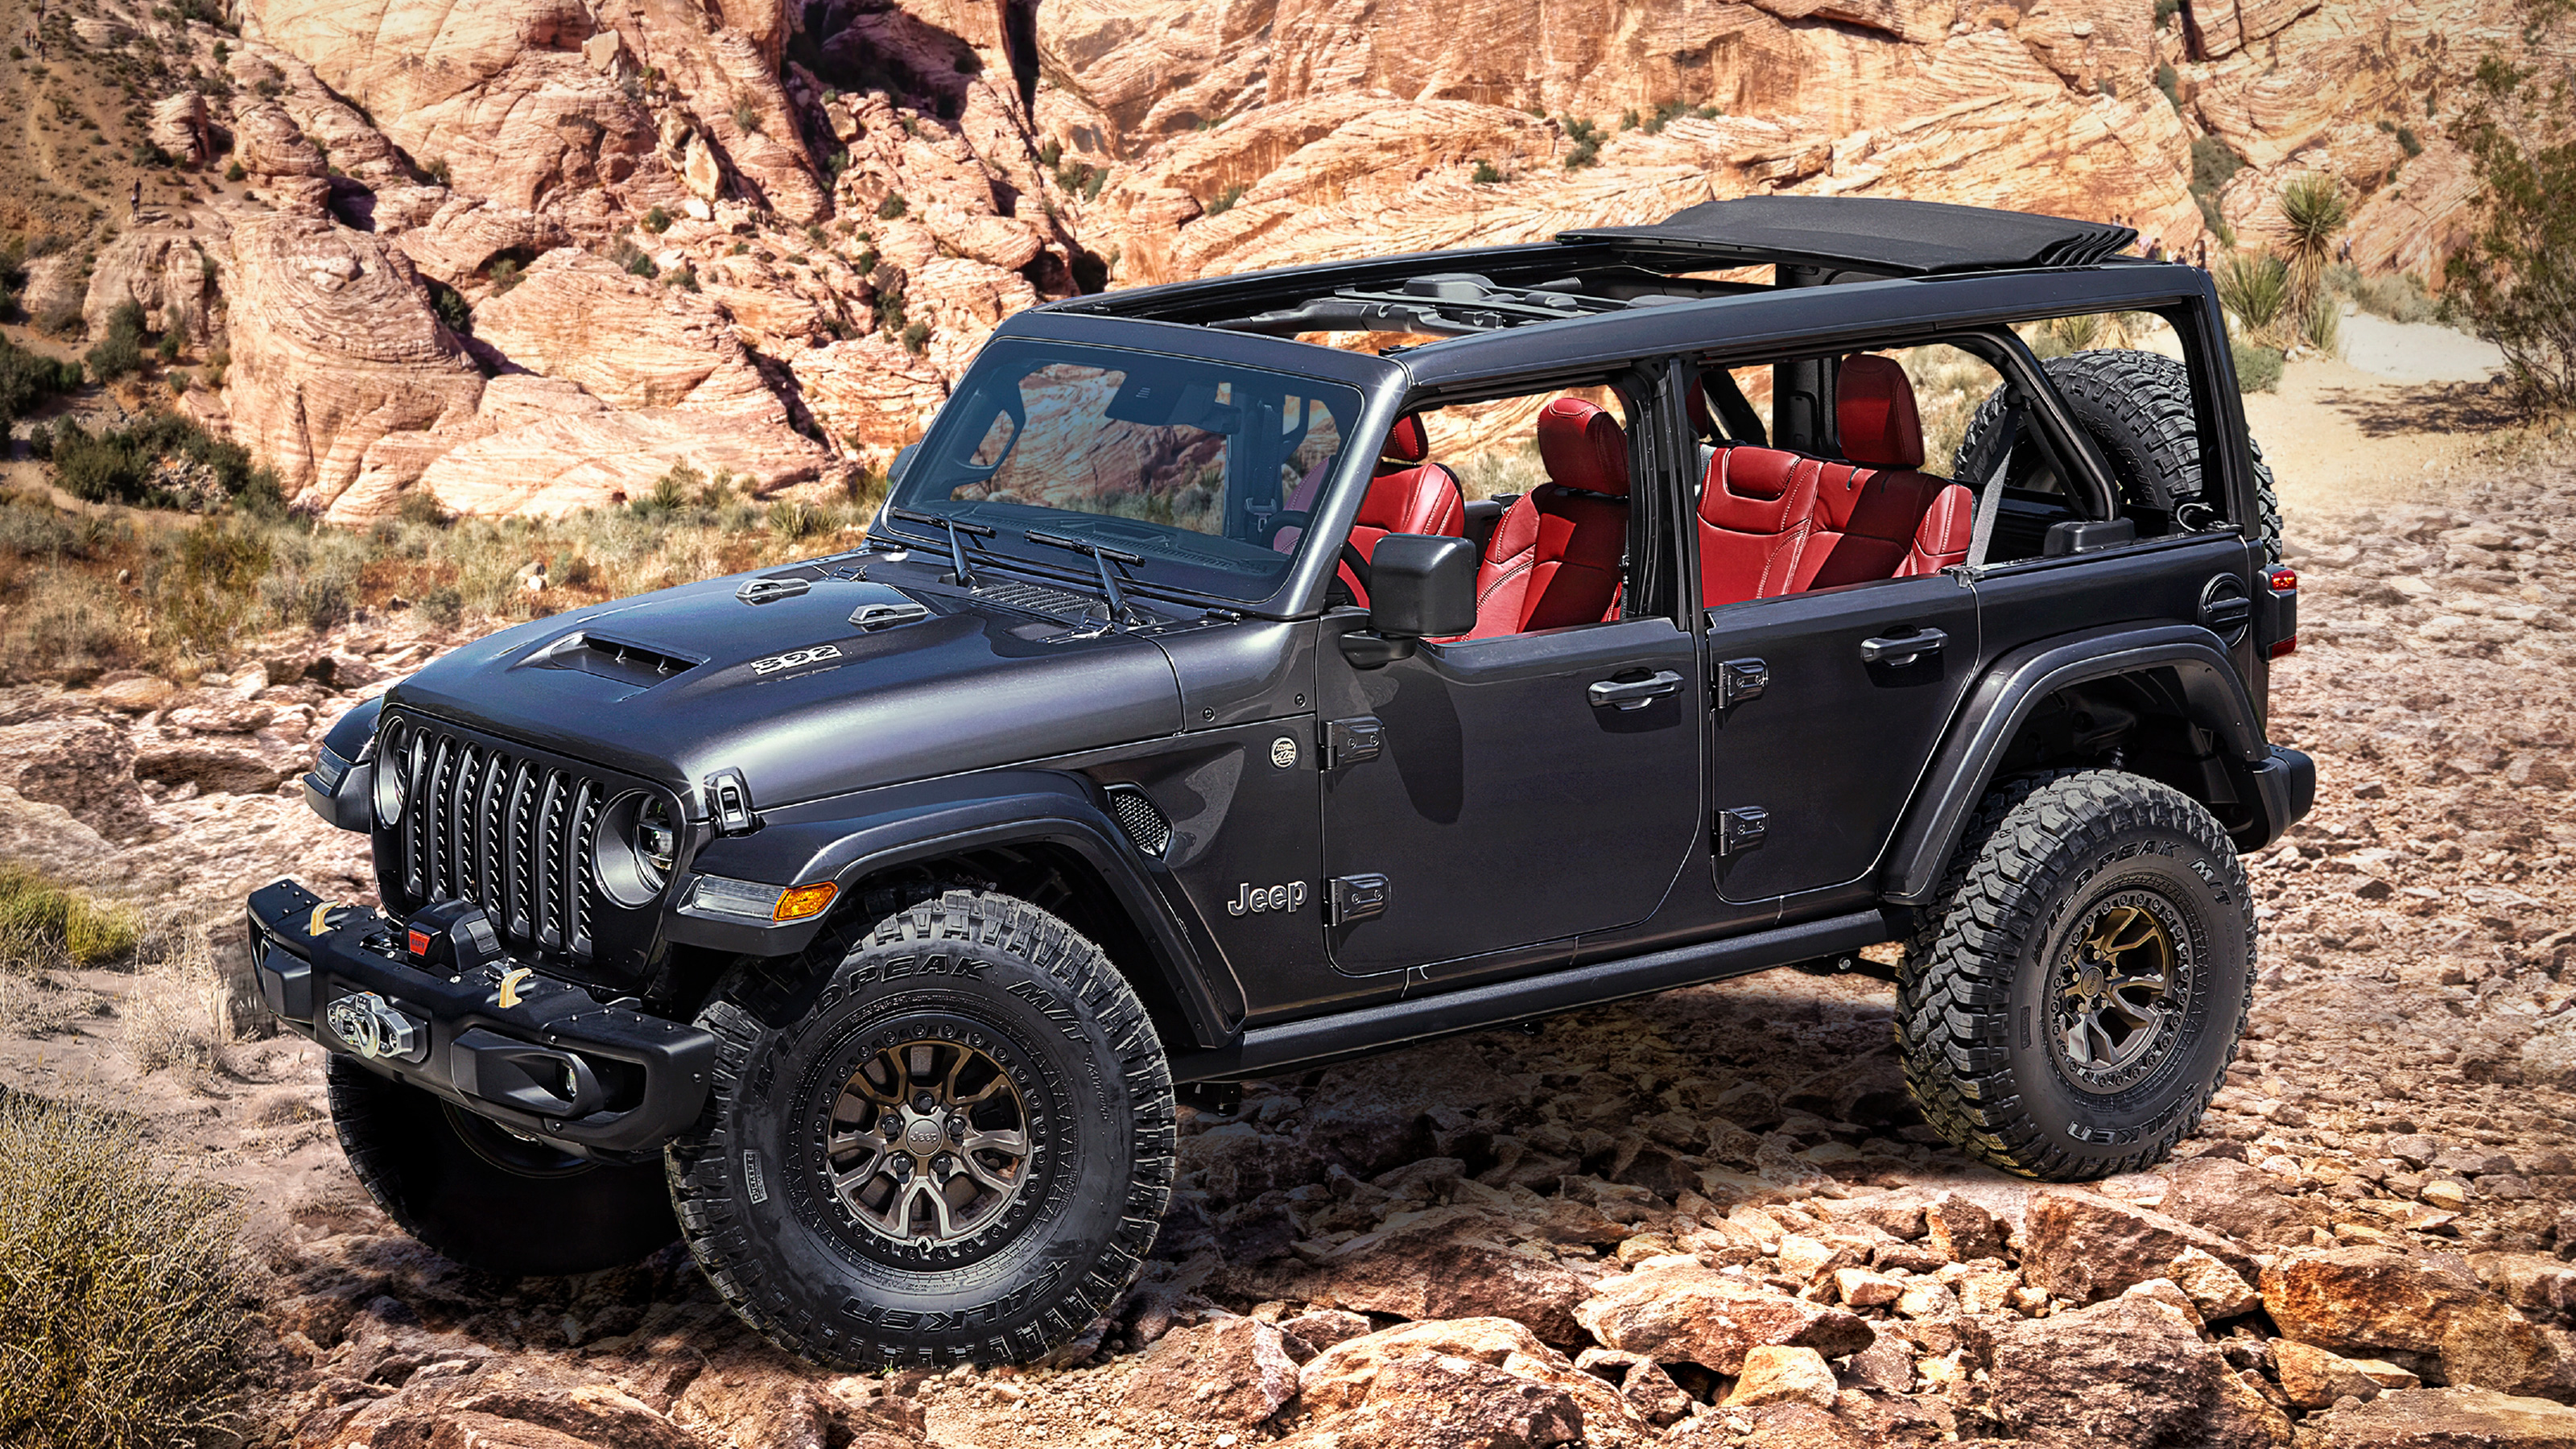 Jeep teases production-ready V8 Wrangler with Rubicon 392 concept | Auto Express